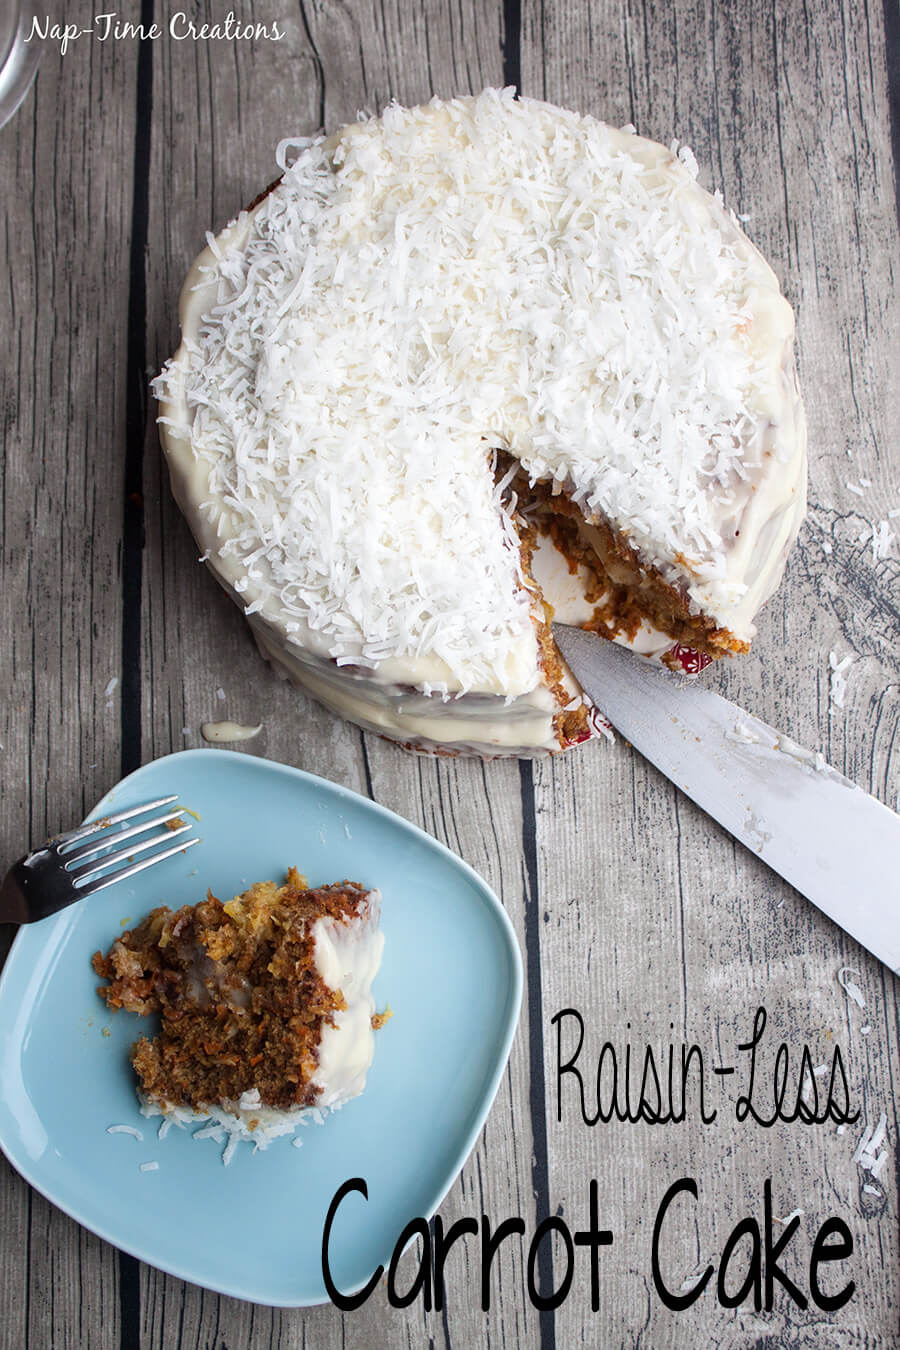 raisin-less Carrot Cake Recipe with Cream Cheese Frosting from Nap-Time Creations Delicious Carrot Cake without raisins